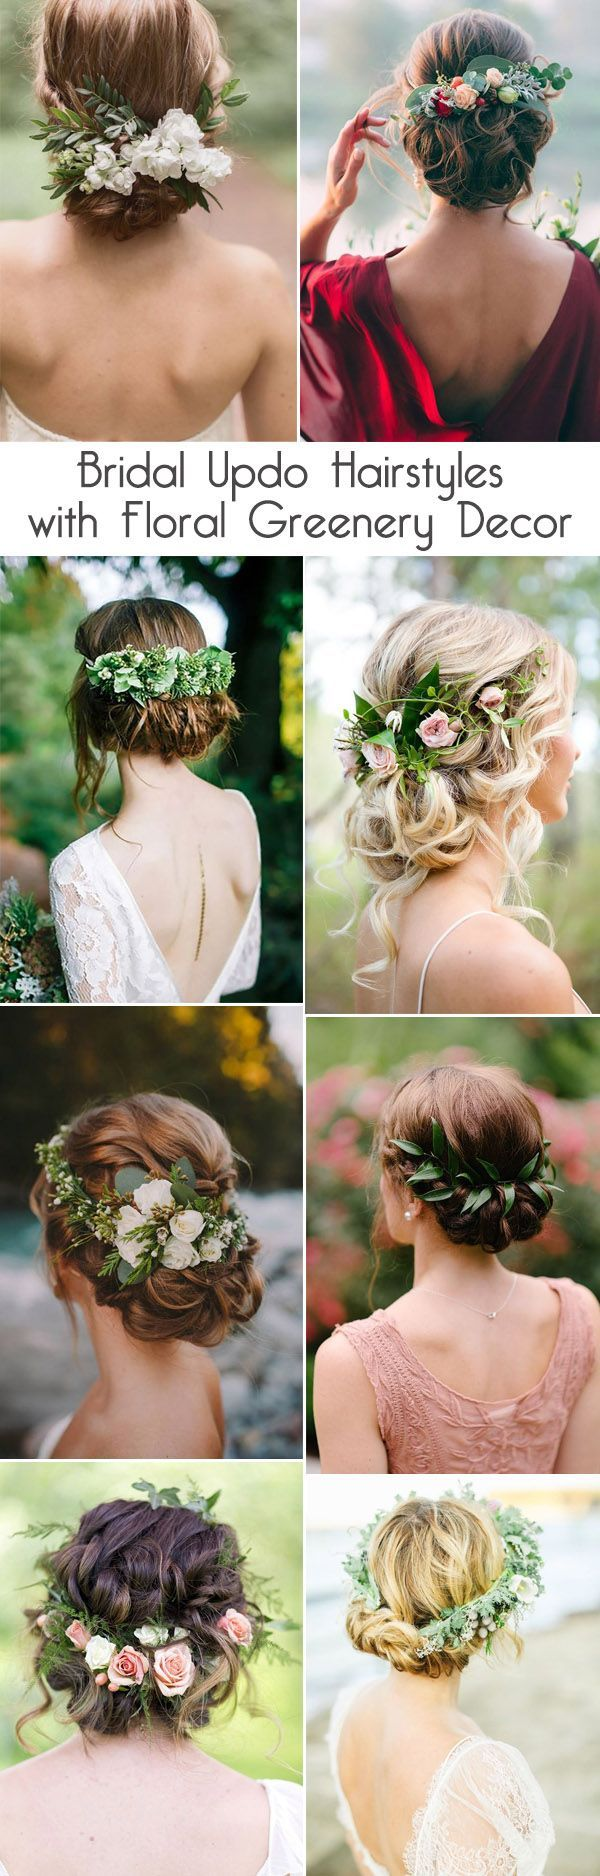 pretty bridal updo hairstyles with floral greenery decor